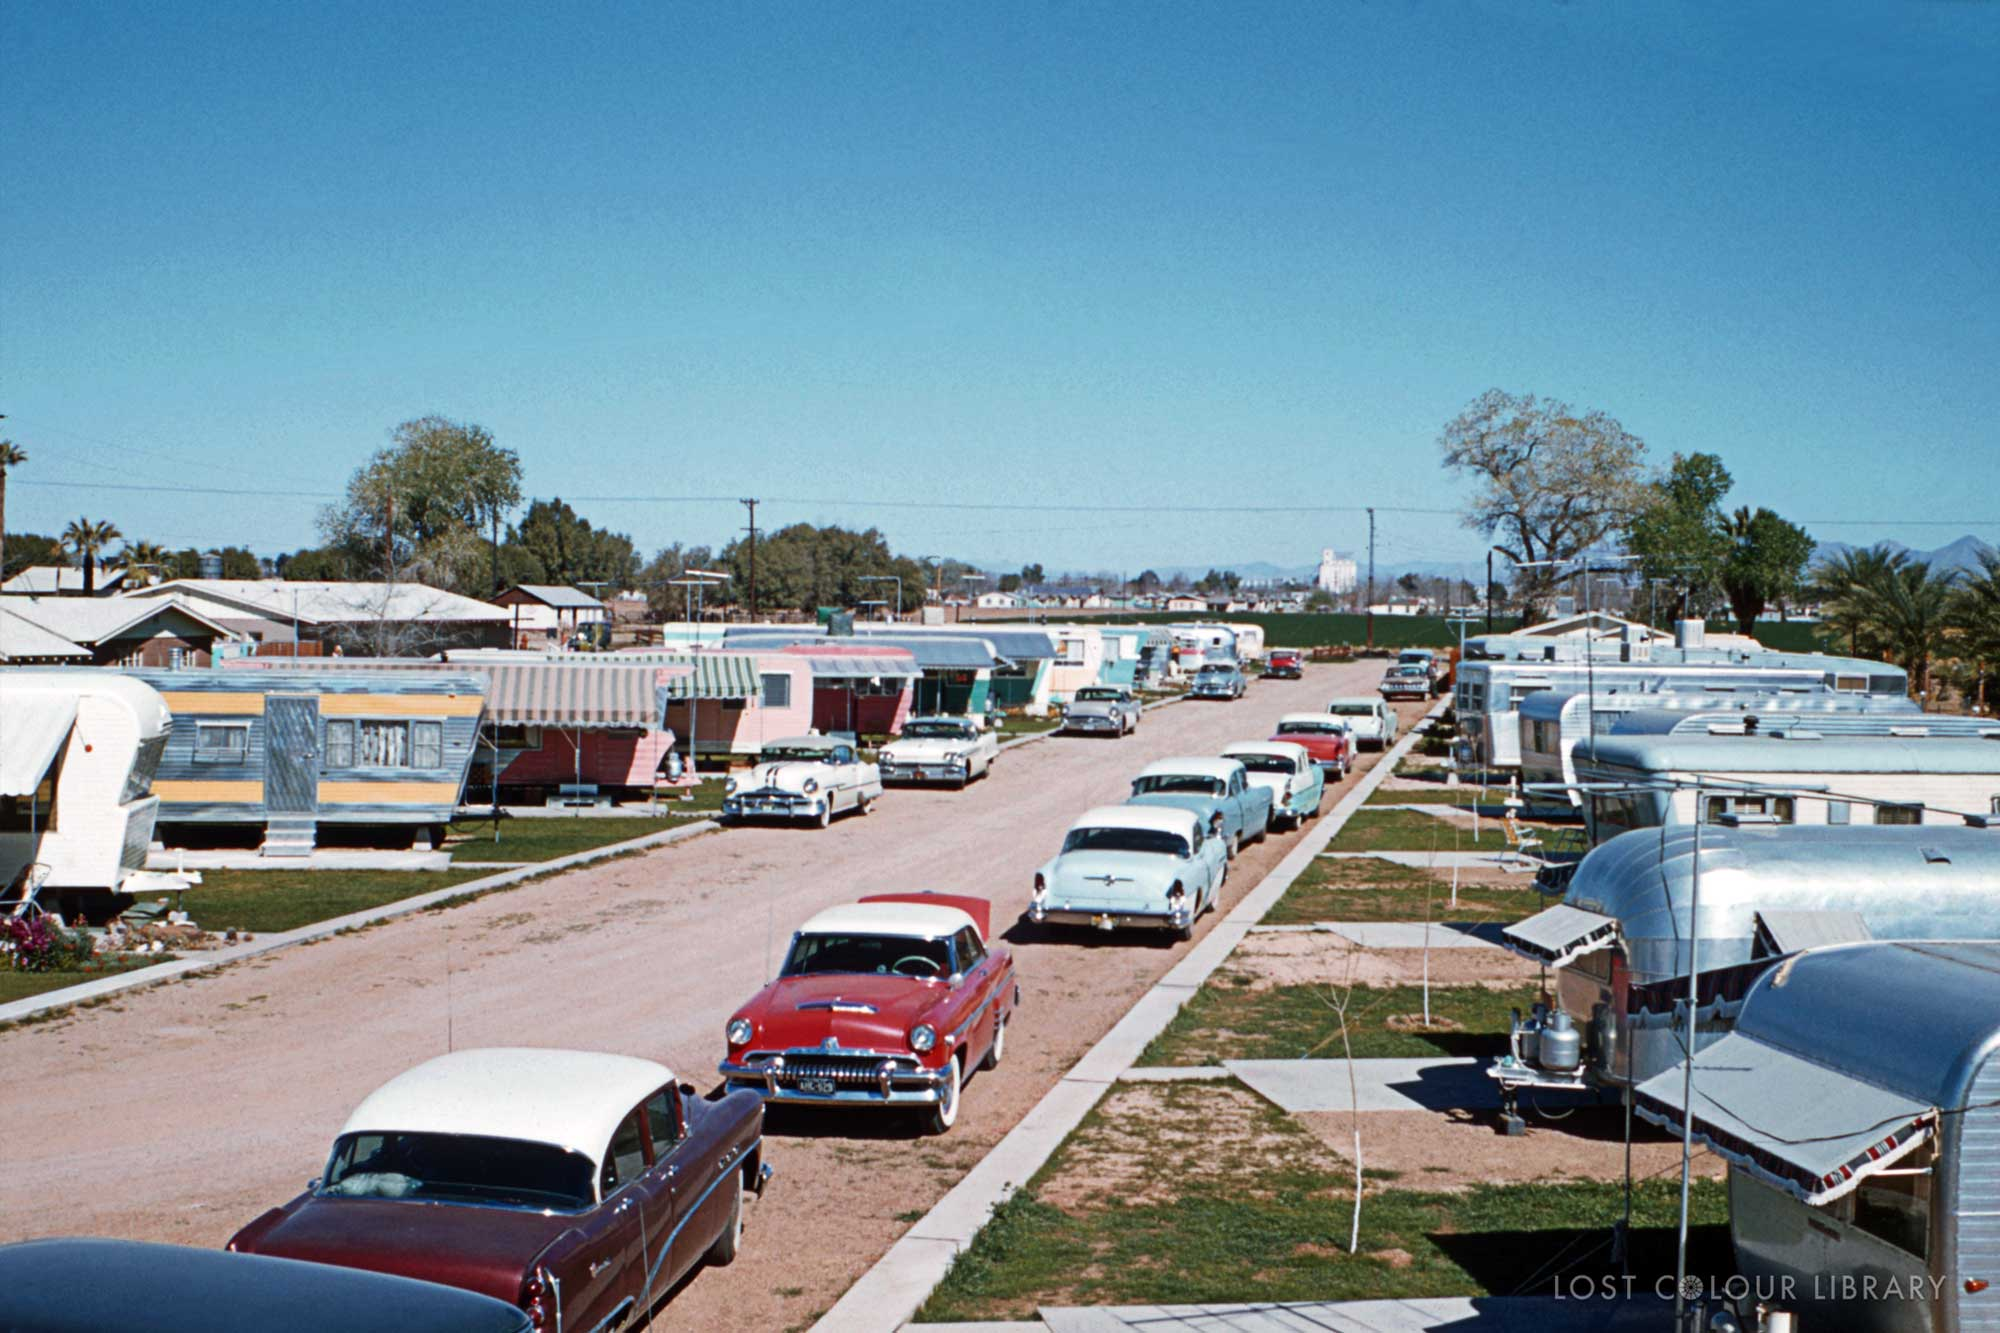 lcl-ww-trailers-1950s-site-wm.jpg